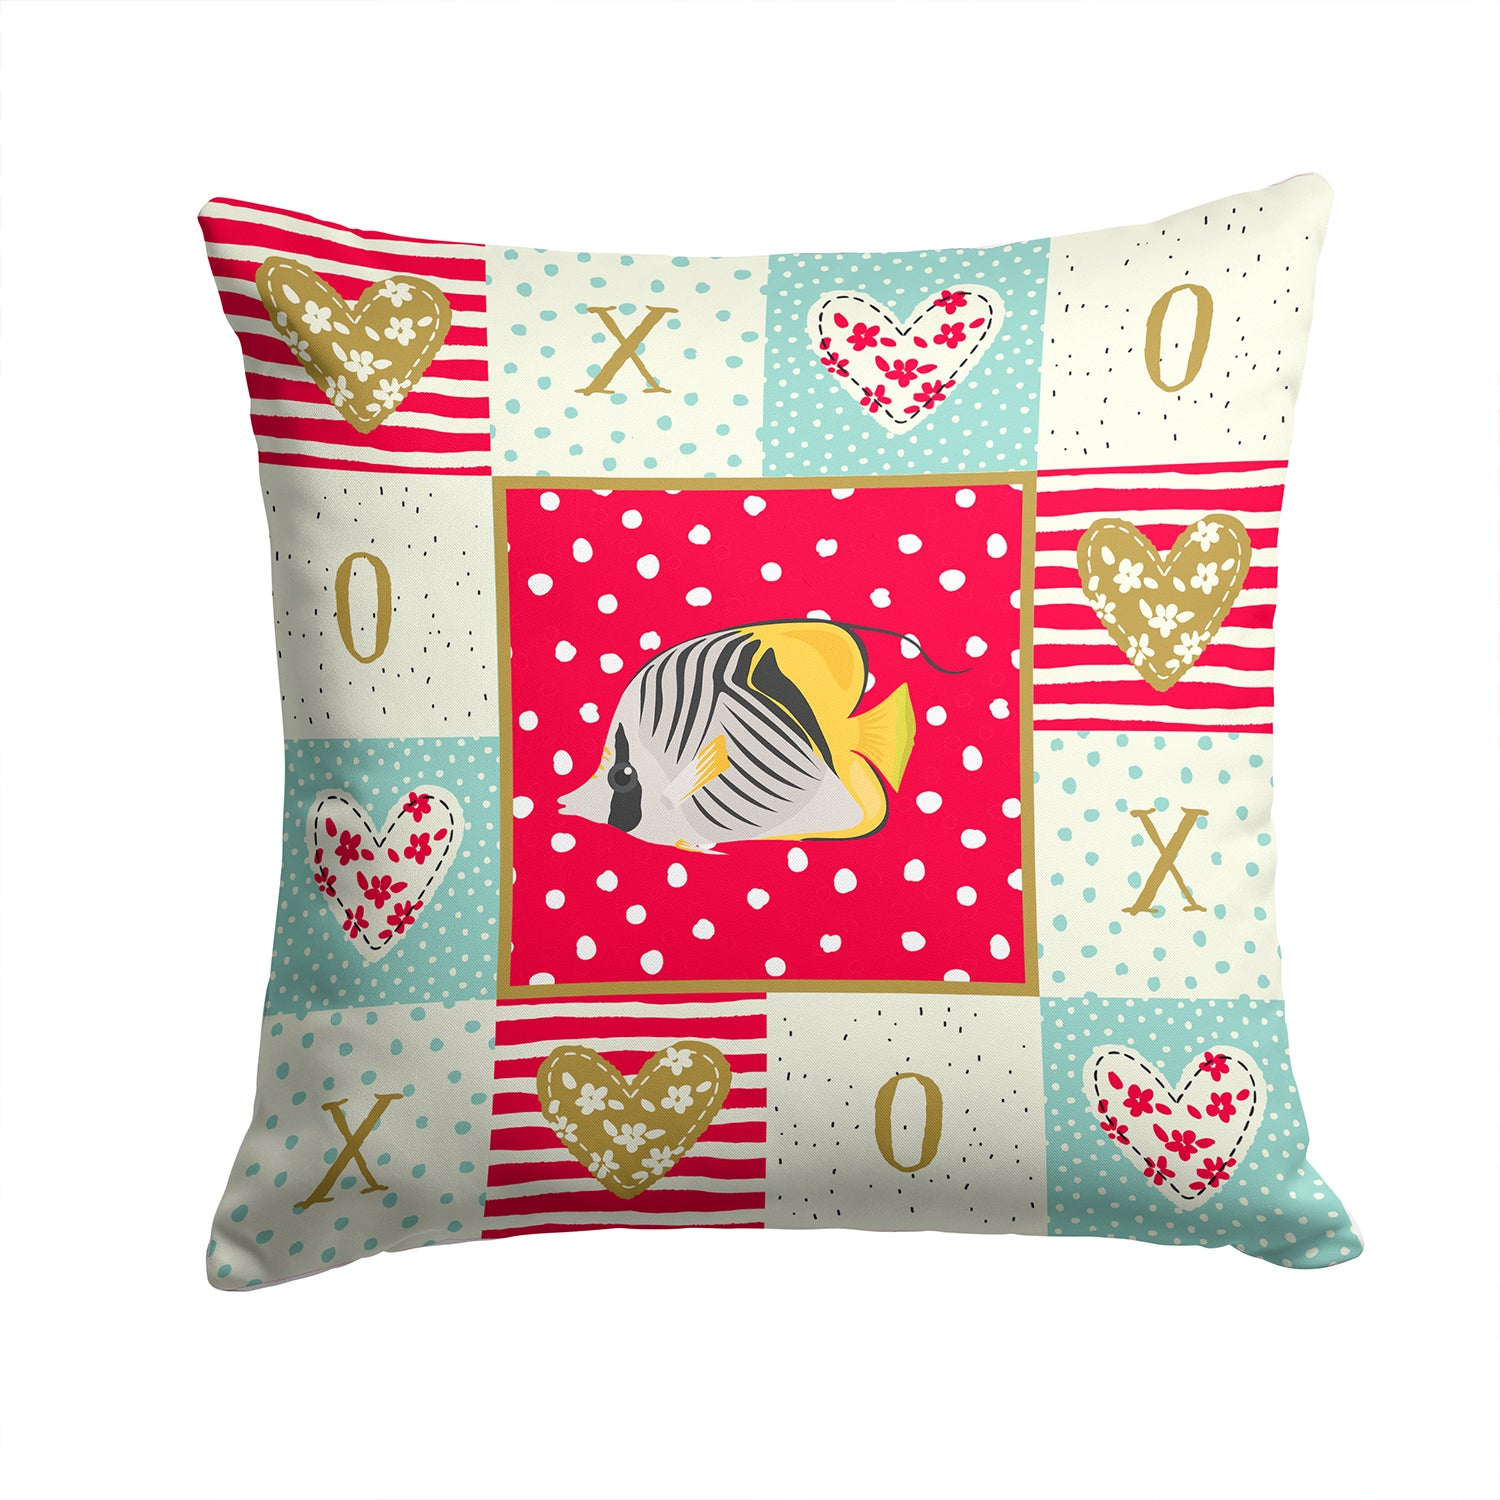 Butterfly Fish Love Fabric Decorative Pillow CK5466PW1414 by Caroline's Treasures